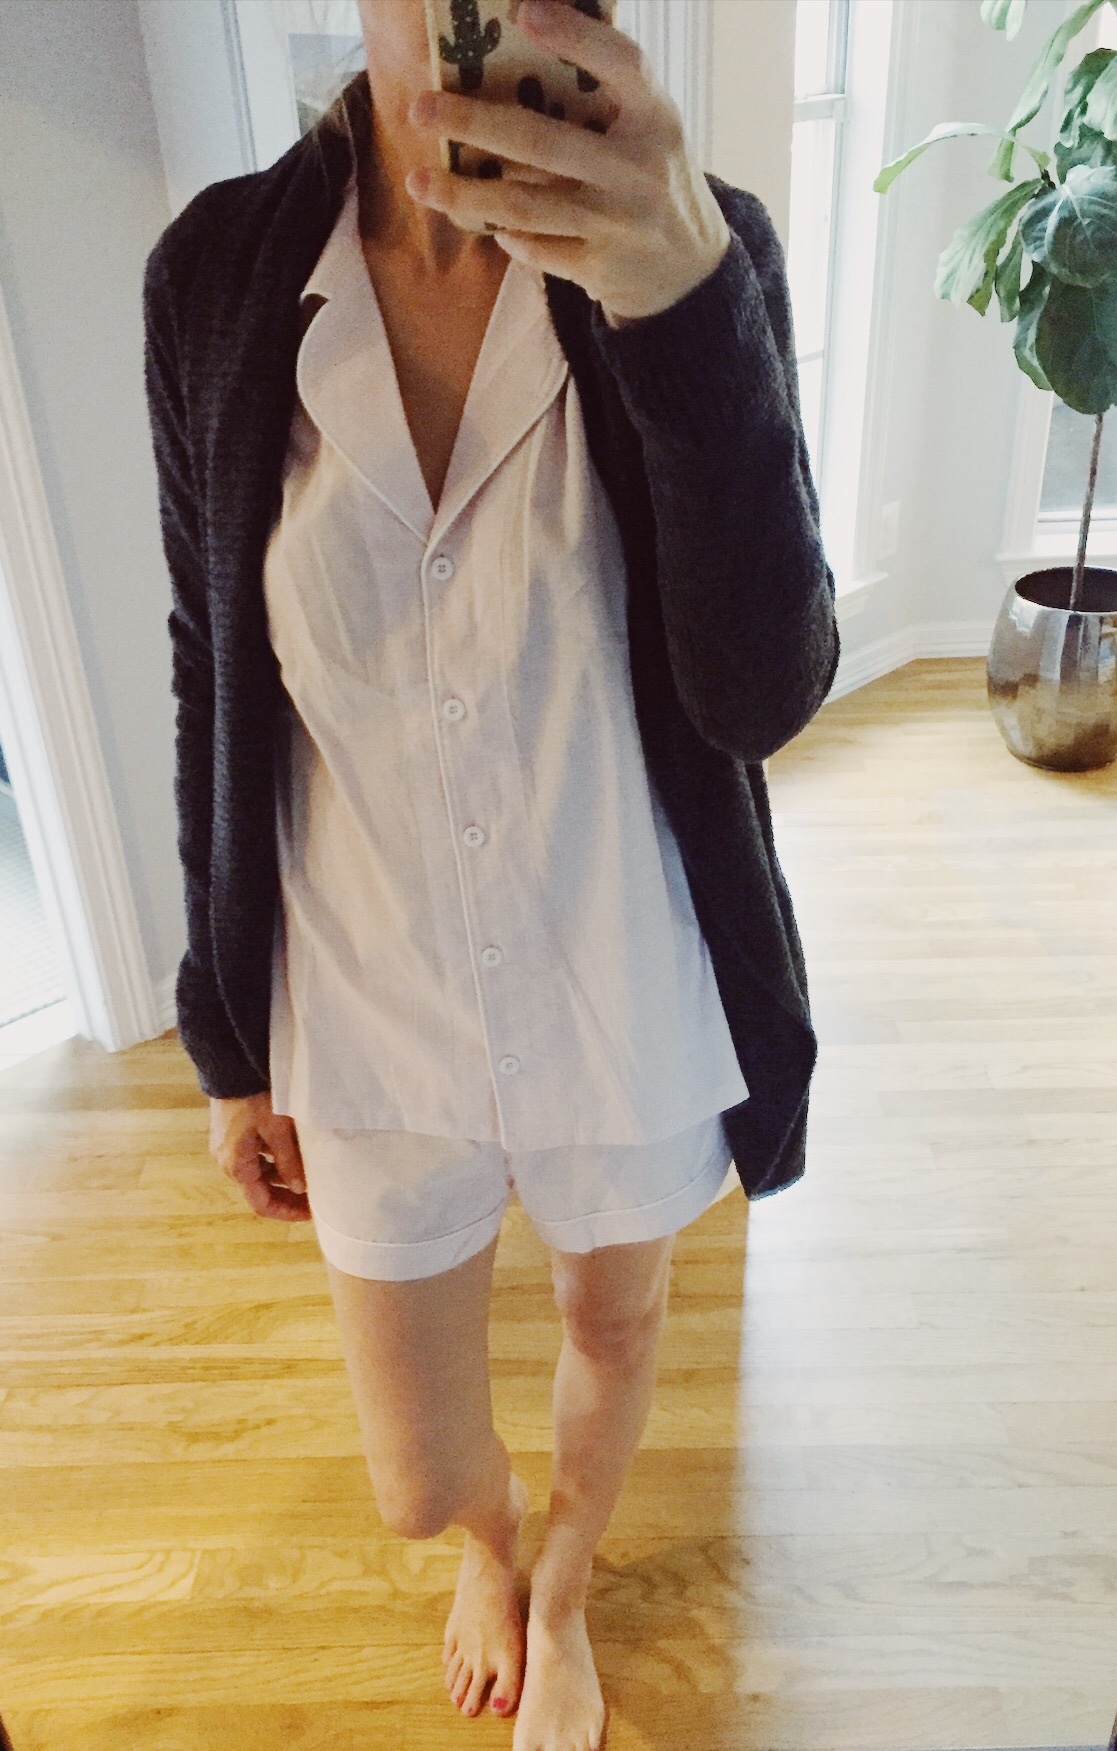 UGG Pajama Set topped with a Barefoot Dreams Circle Cardigan. So comfy! See everything that I bought at the 2018 Nordstrom Anniversary Sale on the blog!